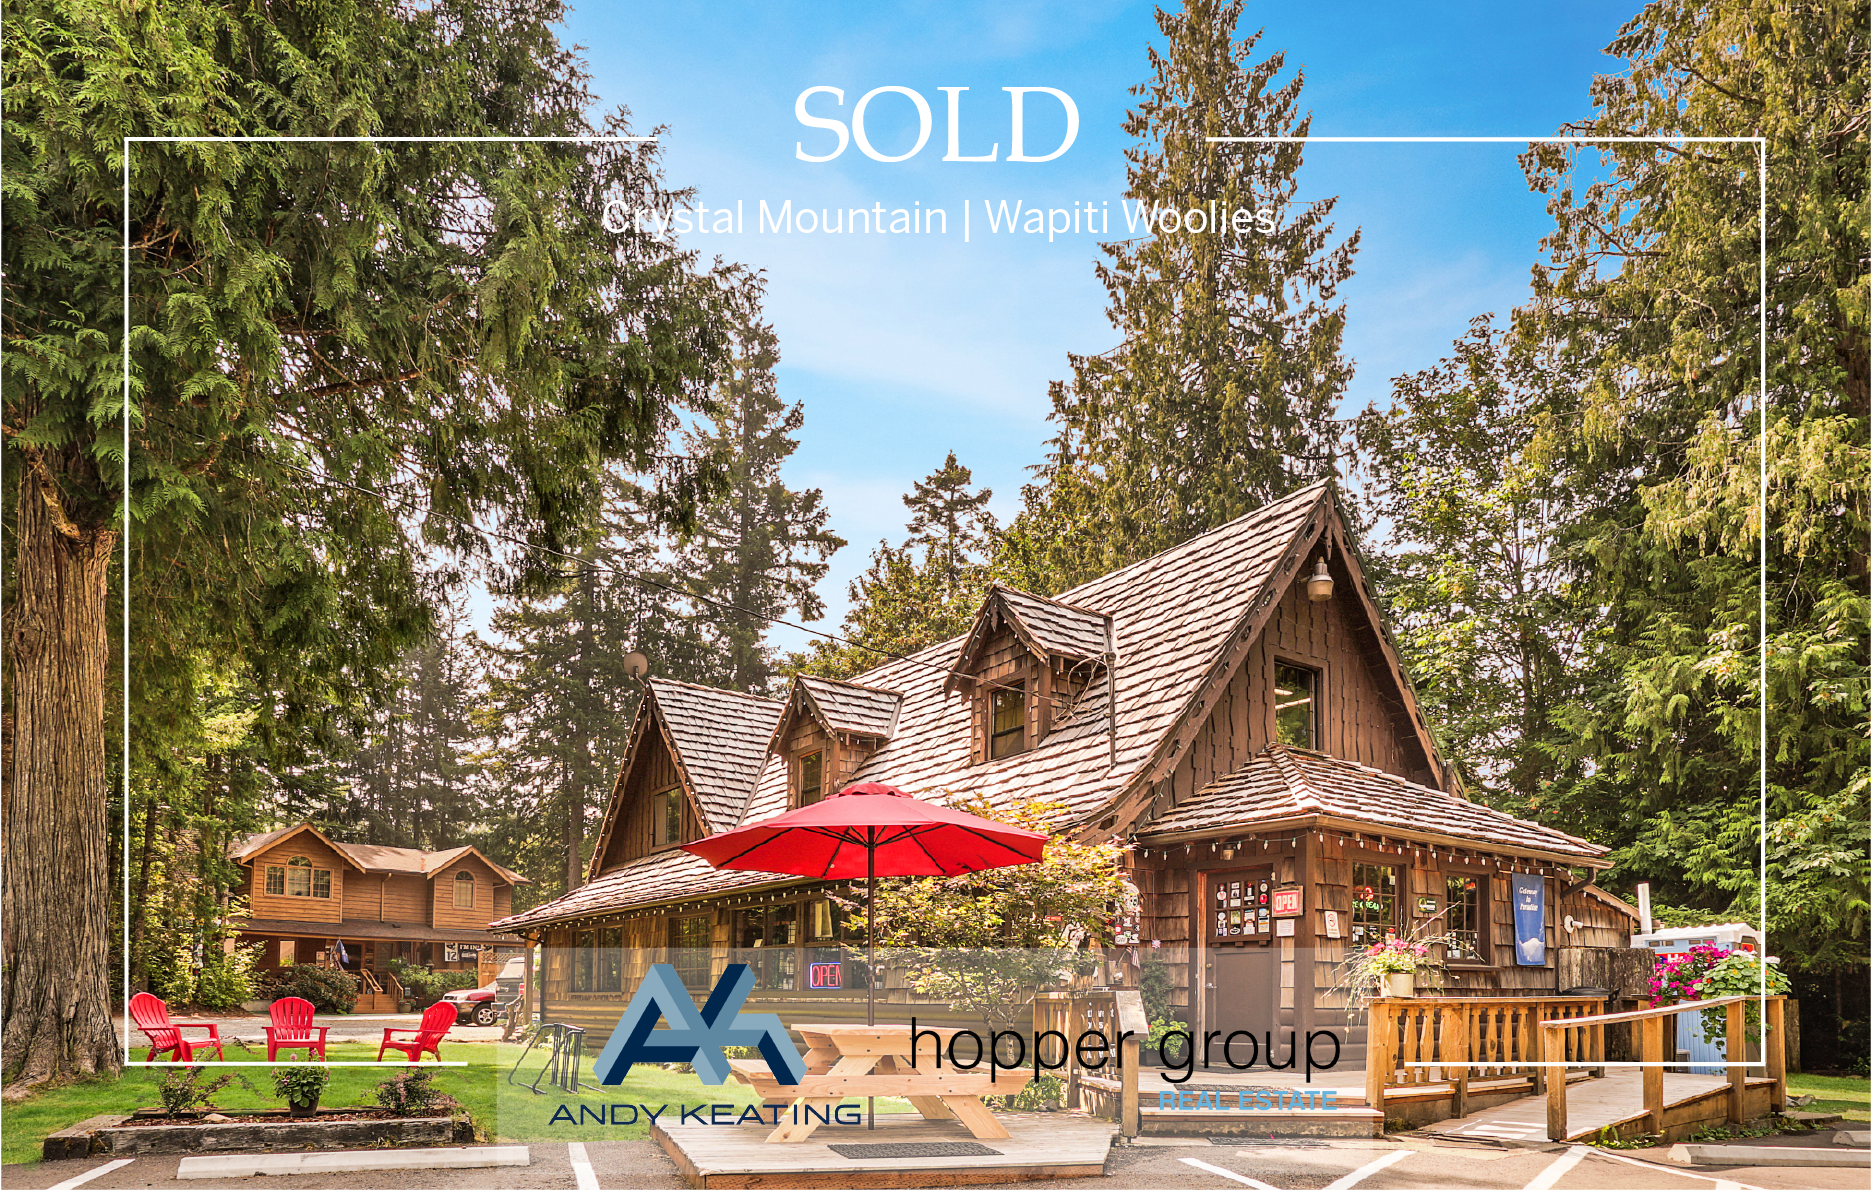 Commercial Listing | Crystal Mountain | Wapiti Woolies Represented Seller